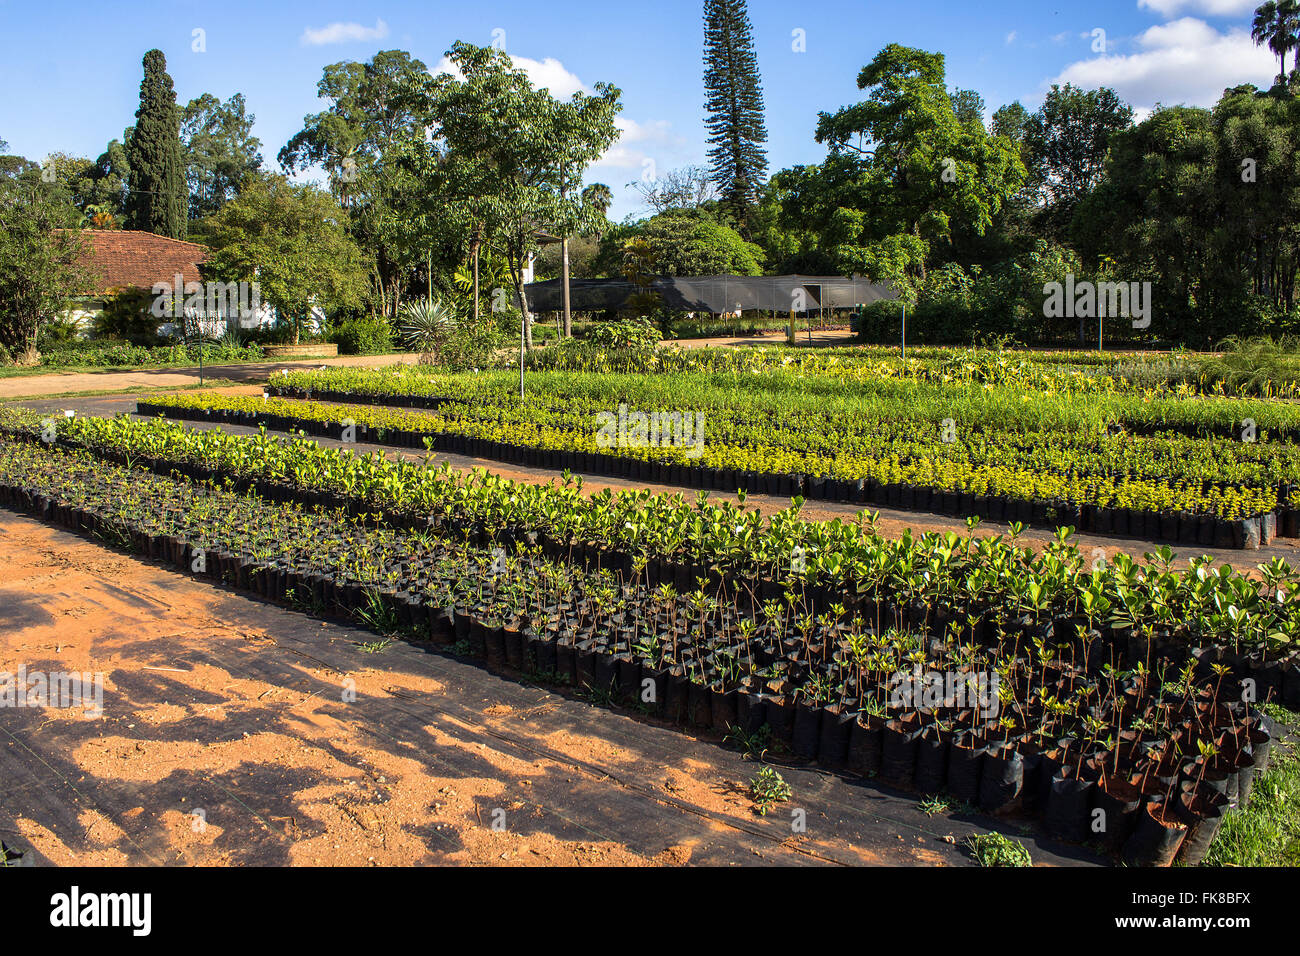 Seedlings ready for distribution - Nursery Manequinho Lopes - Ibirapuera Park - Stock Image